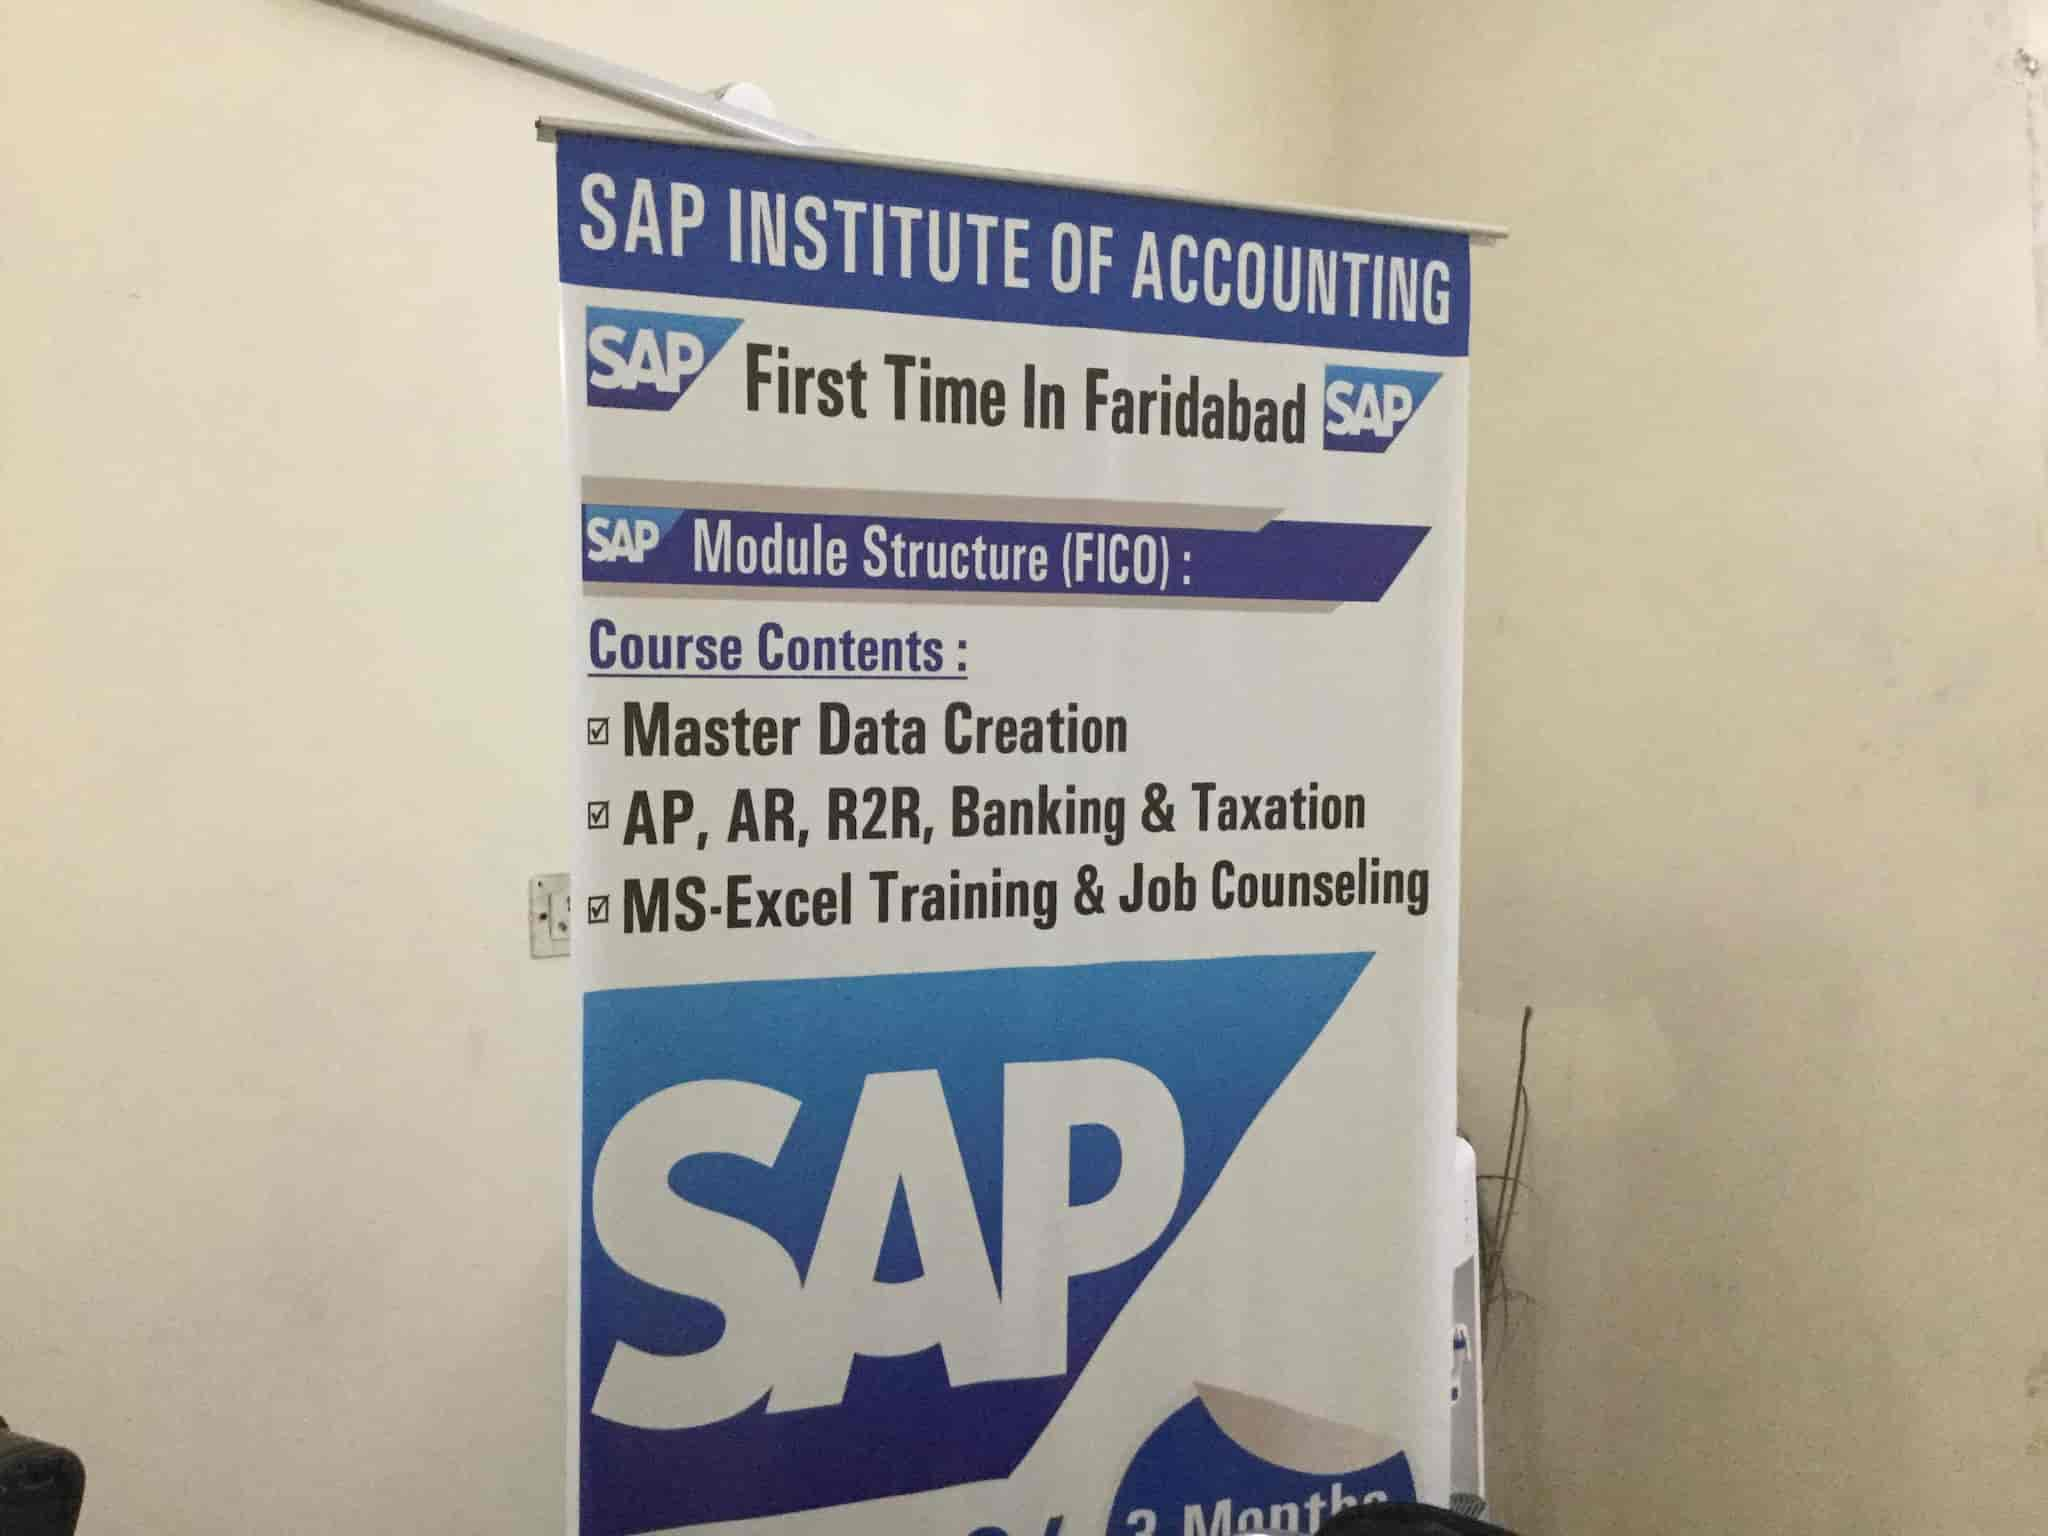 SAP Institute Of Accounting, Faridabad Nit - SAP Training